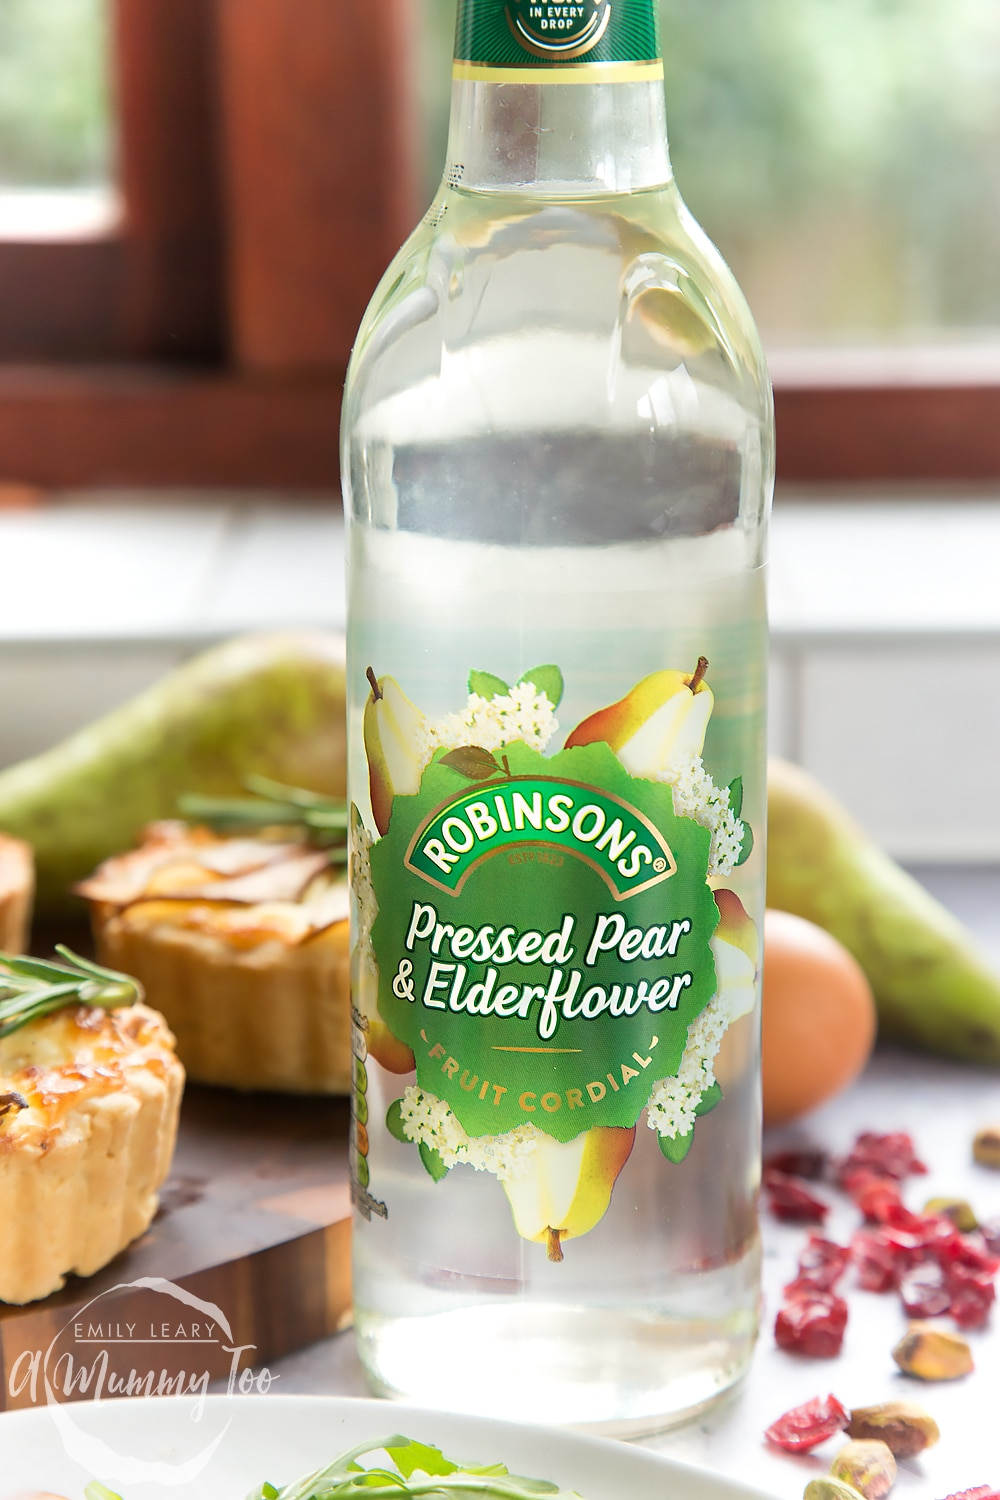 Robinsons pressed pear and elderflower fruit cordial, shown alongside the rosemary goat's cheese tarts